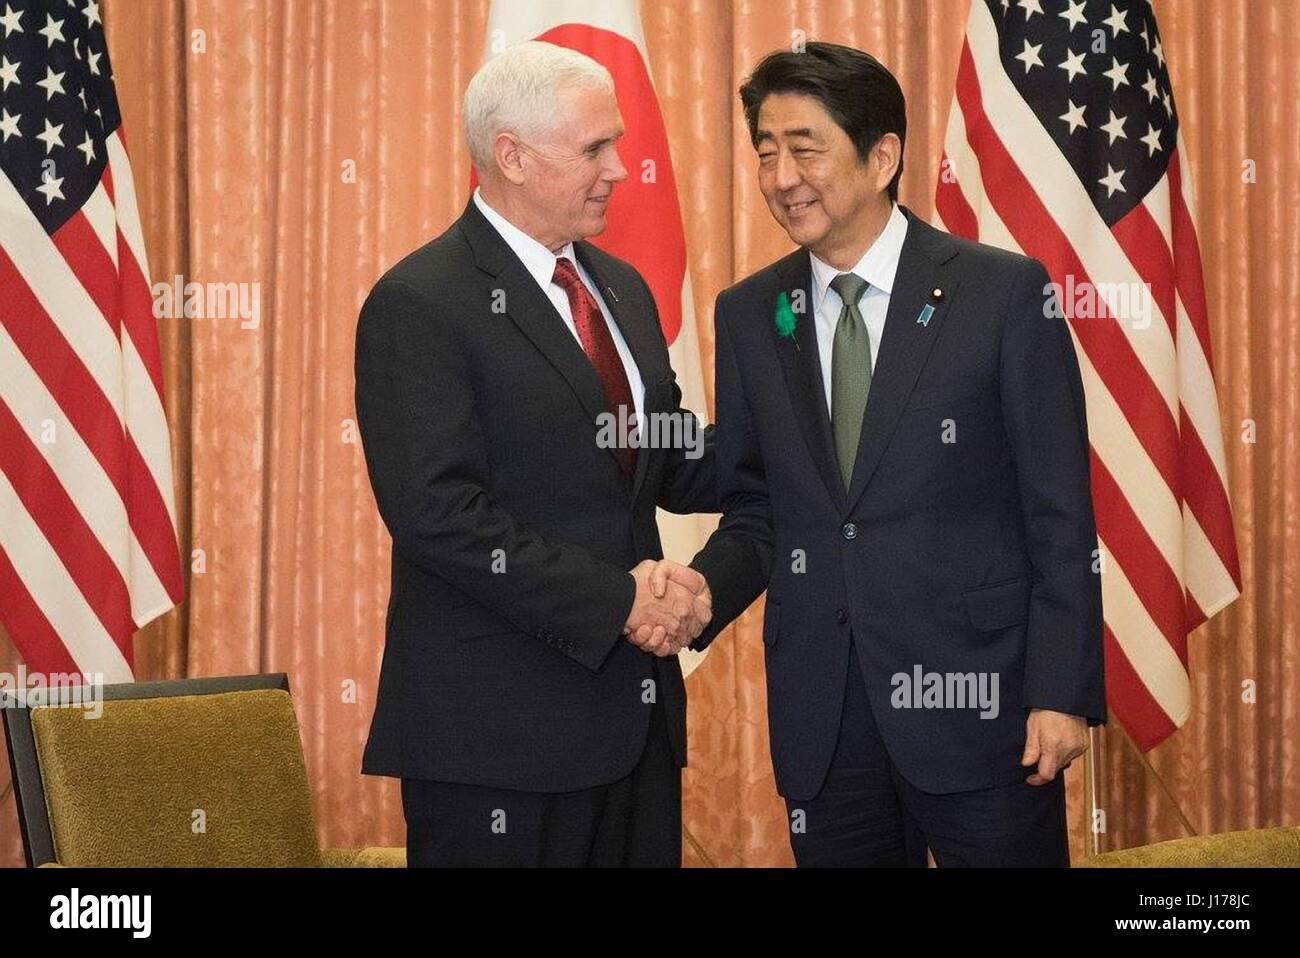 Tokyo, Japan. 18th Apr, 2017. U.S. Vice President Mike Pence, left, shakes hands with Japanese Prime Minister Shinzo - Stock Image